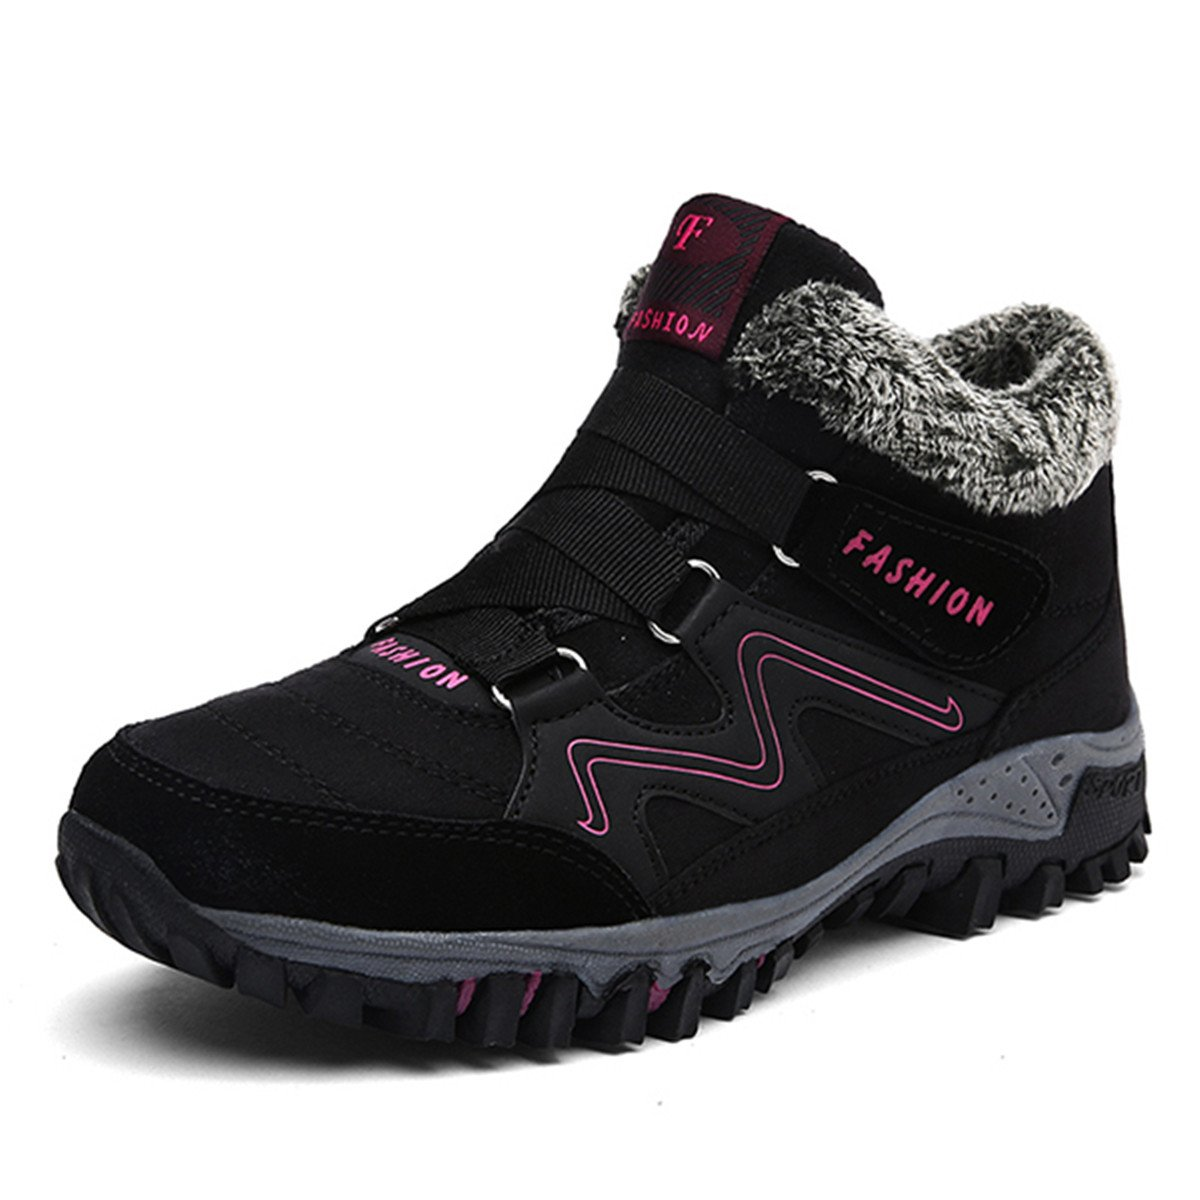 5e6496f1dfb99 gracosy Women Walking Hiking Ankle Boots